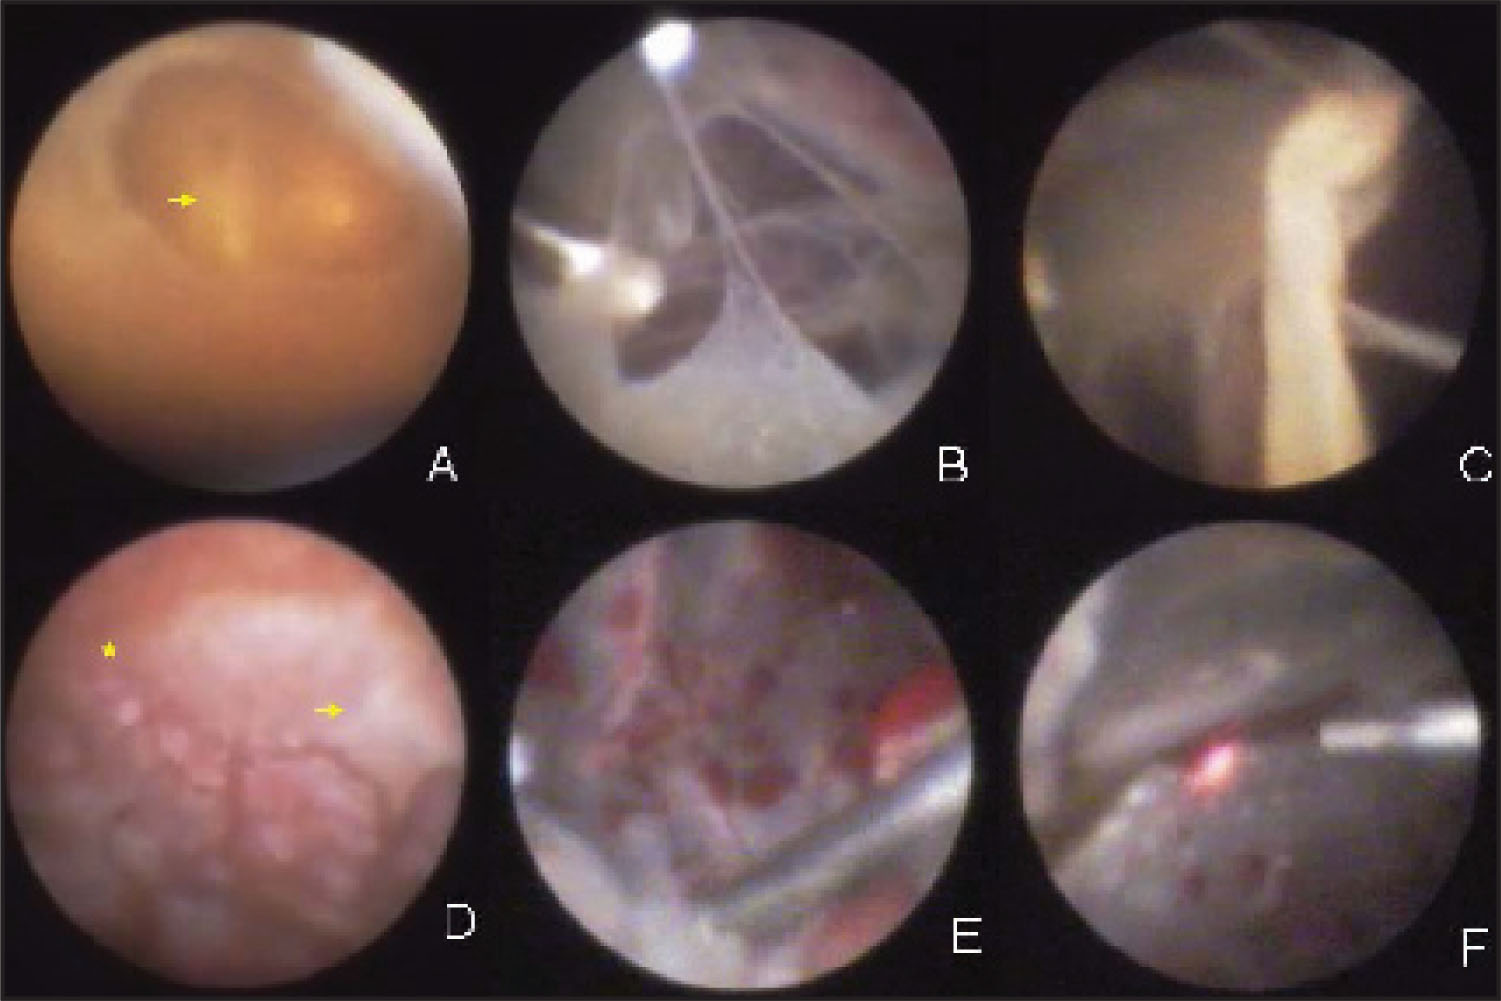 Endoscopic Views During Vitrectomy of Case 2: (A) Endoscopic Visualization of Cornea Showed a Central Corneal Laceration that Had Been Primary Repaired(arrow), and Opacification of Cornea. (B) Fibrins Formed in Vitreous Cavity Were Removed Under Endoscopic Visualization. (C) The Severely Infected and Rolled Edge of the Giant Retinal Tear Was Excised with a Vitrectomy Cutter. (D) There Were Scattered Necrotic Lesions (star) and Inflammatory Exudates (arrow) in Swollen Pigment Epithelium Layer. (E) The Retina Was Clearly Visualized After the Infectious Vitreous Was Completely Excised. (F) The Retinal Tears Were Treated by Photocoagulation.